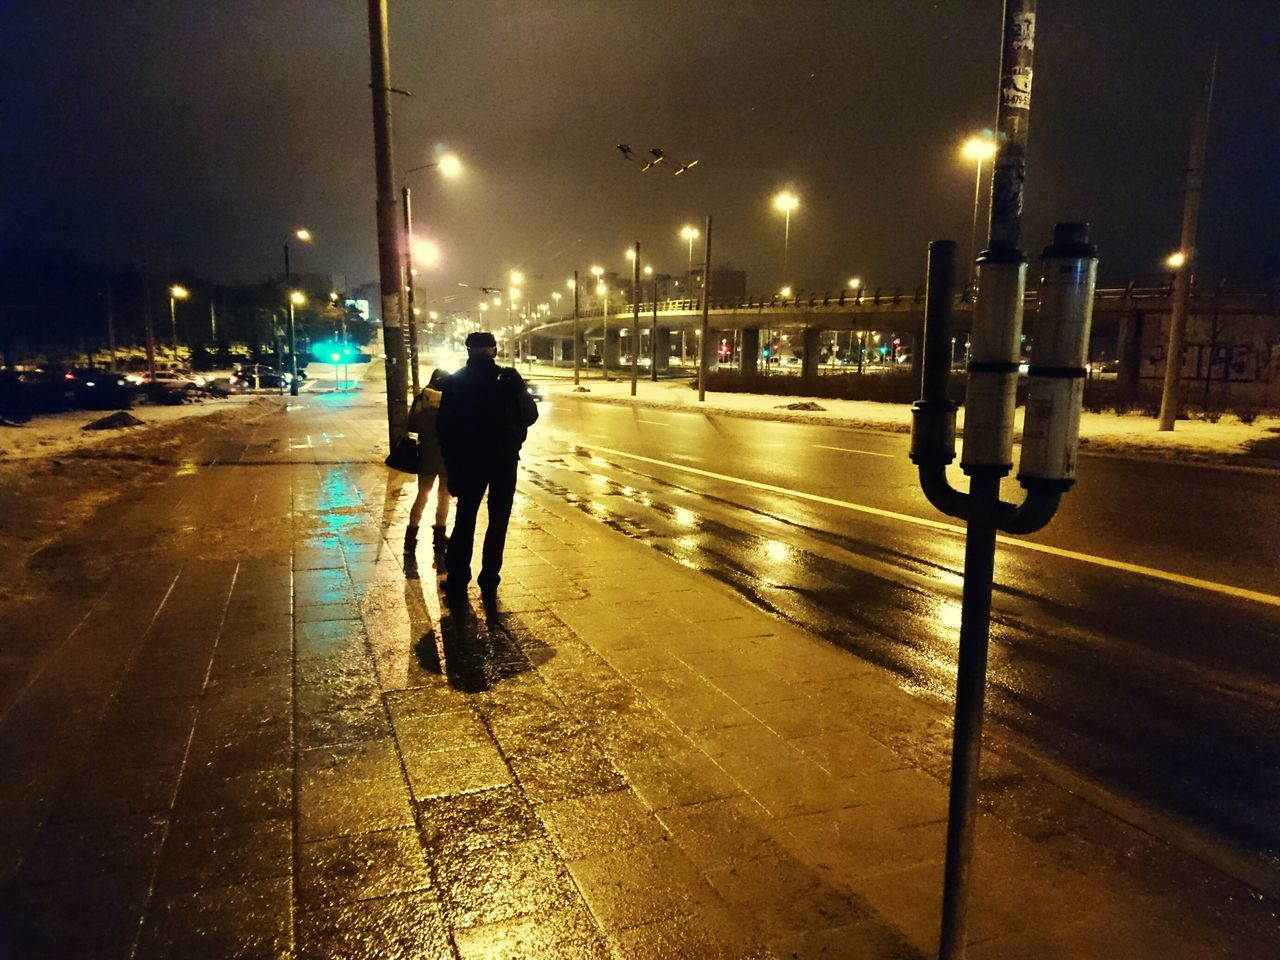 Nigth  Waiting For The Bus City Illuminated Street Outdoors Winter Wet